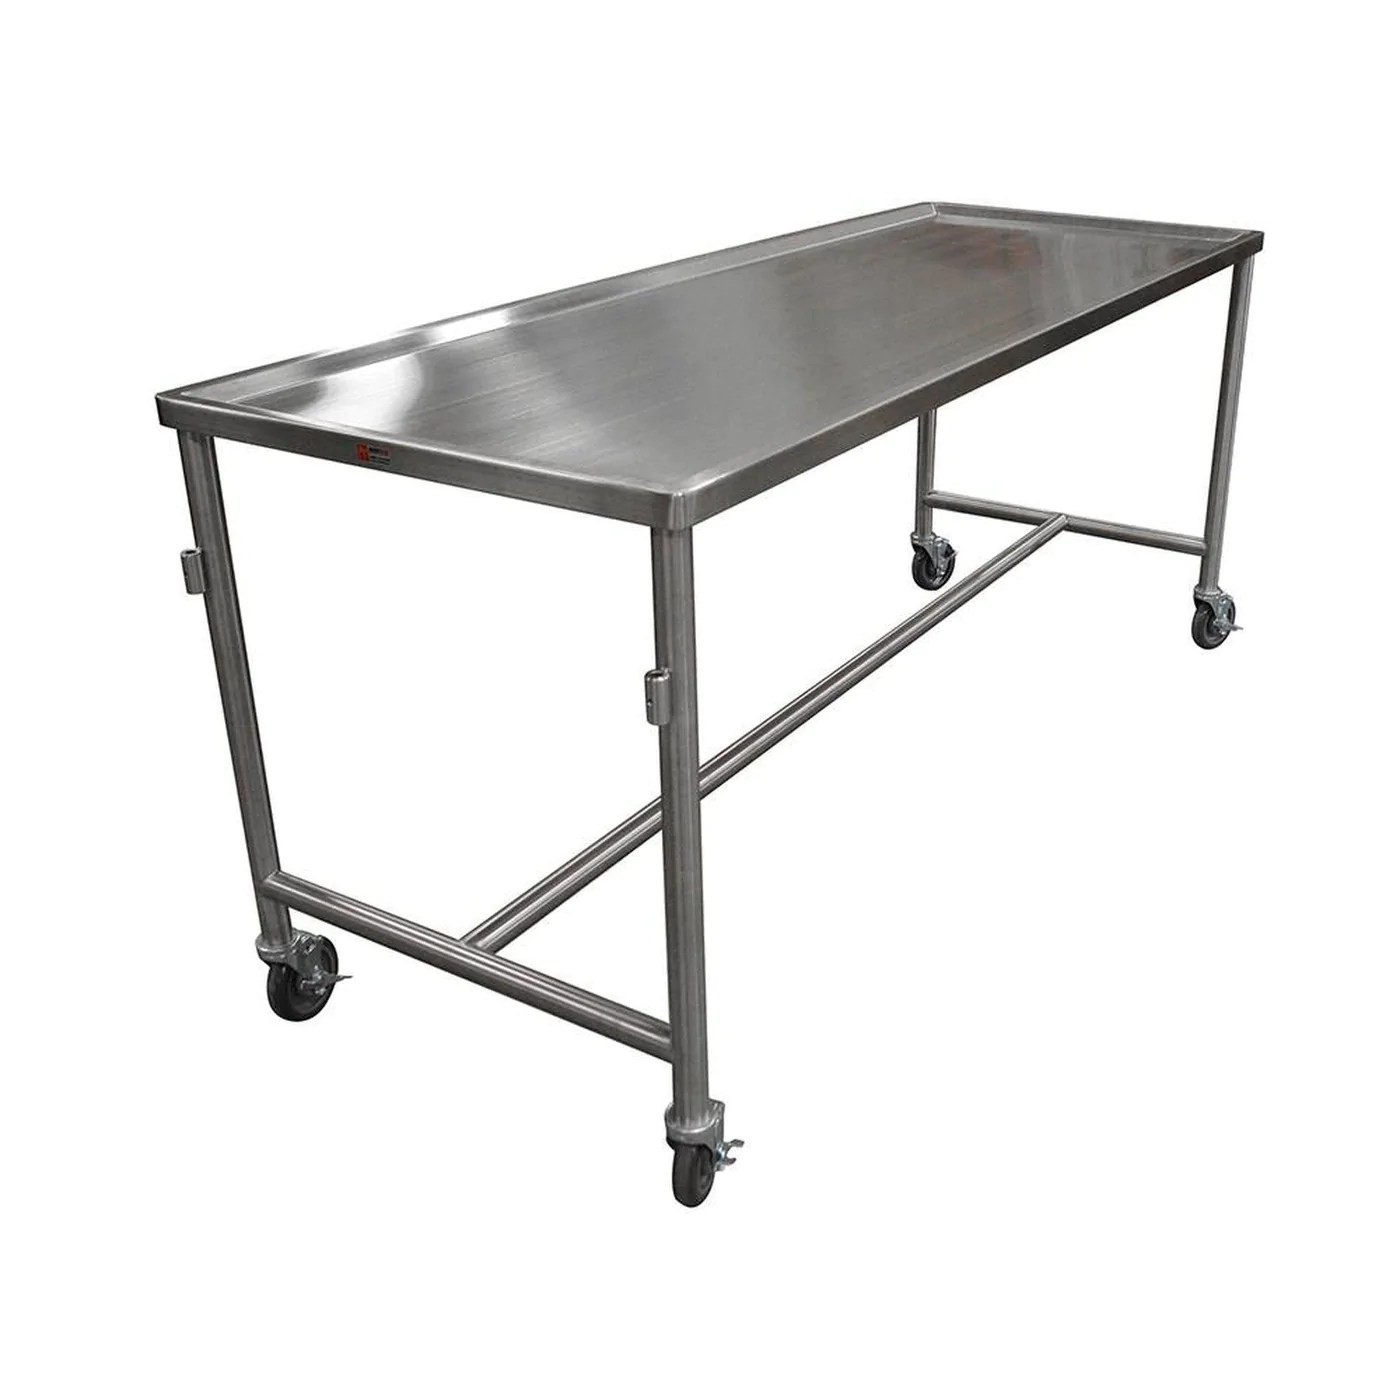 Metal Table Anatomy Dissection Tables Mortech Manufacturing Company Inc